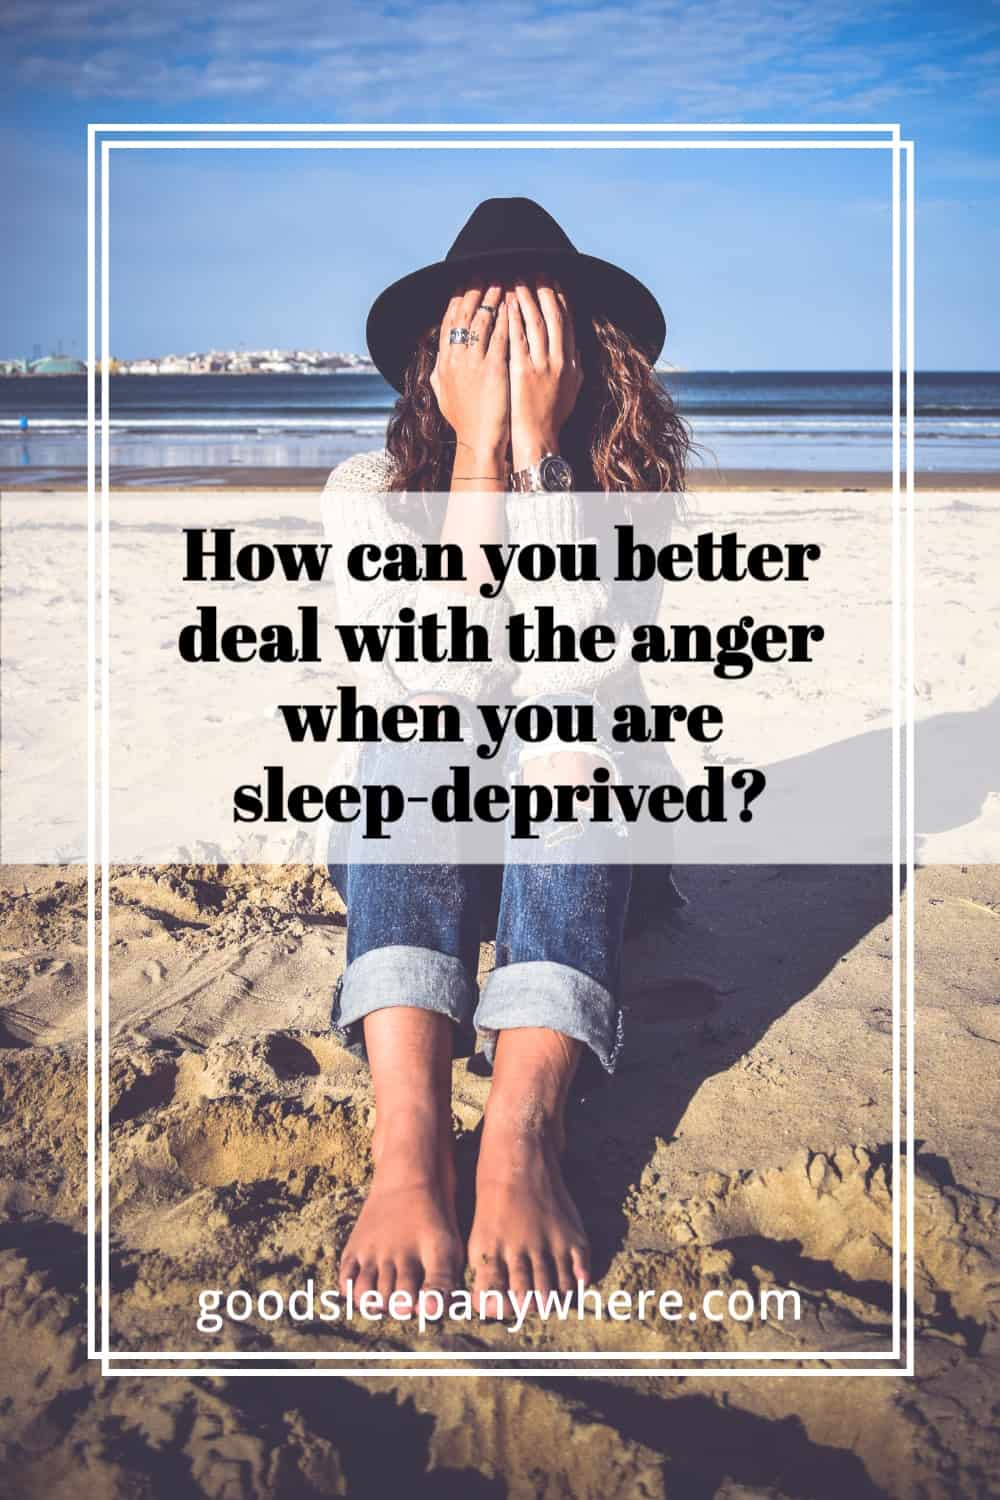 How can you better deal with the anger when you are sleep deprived